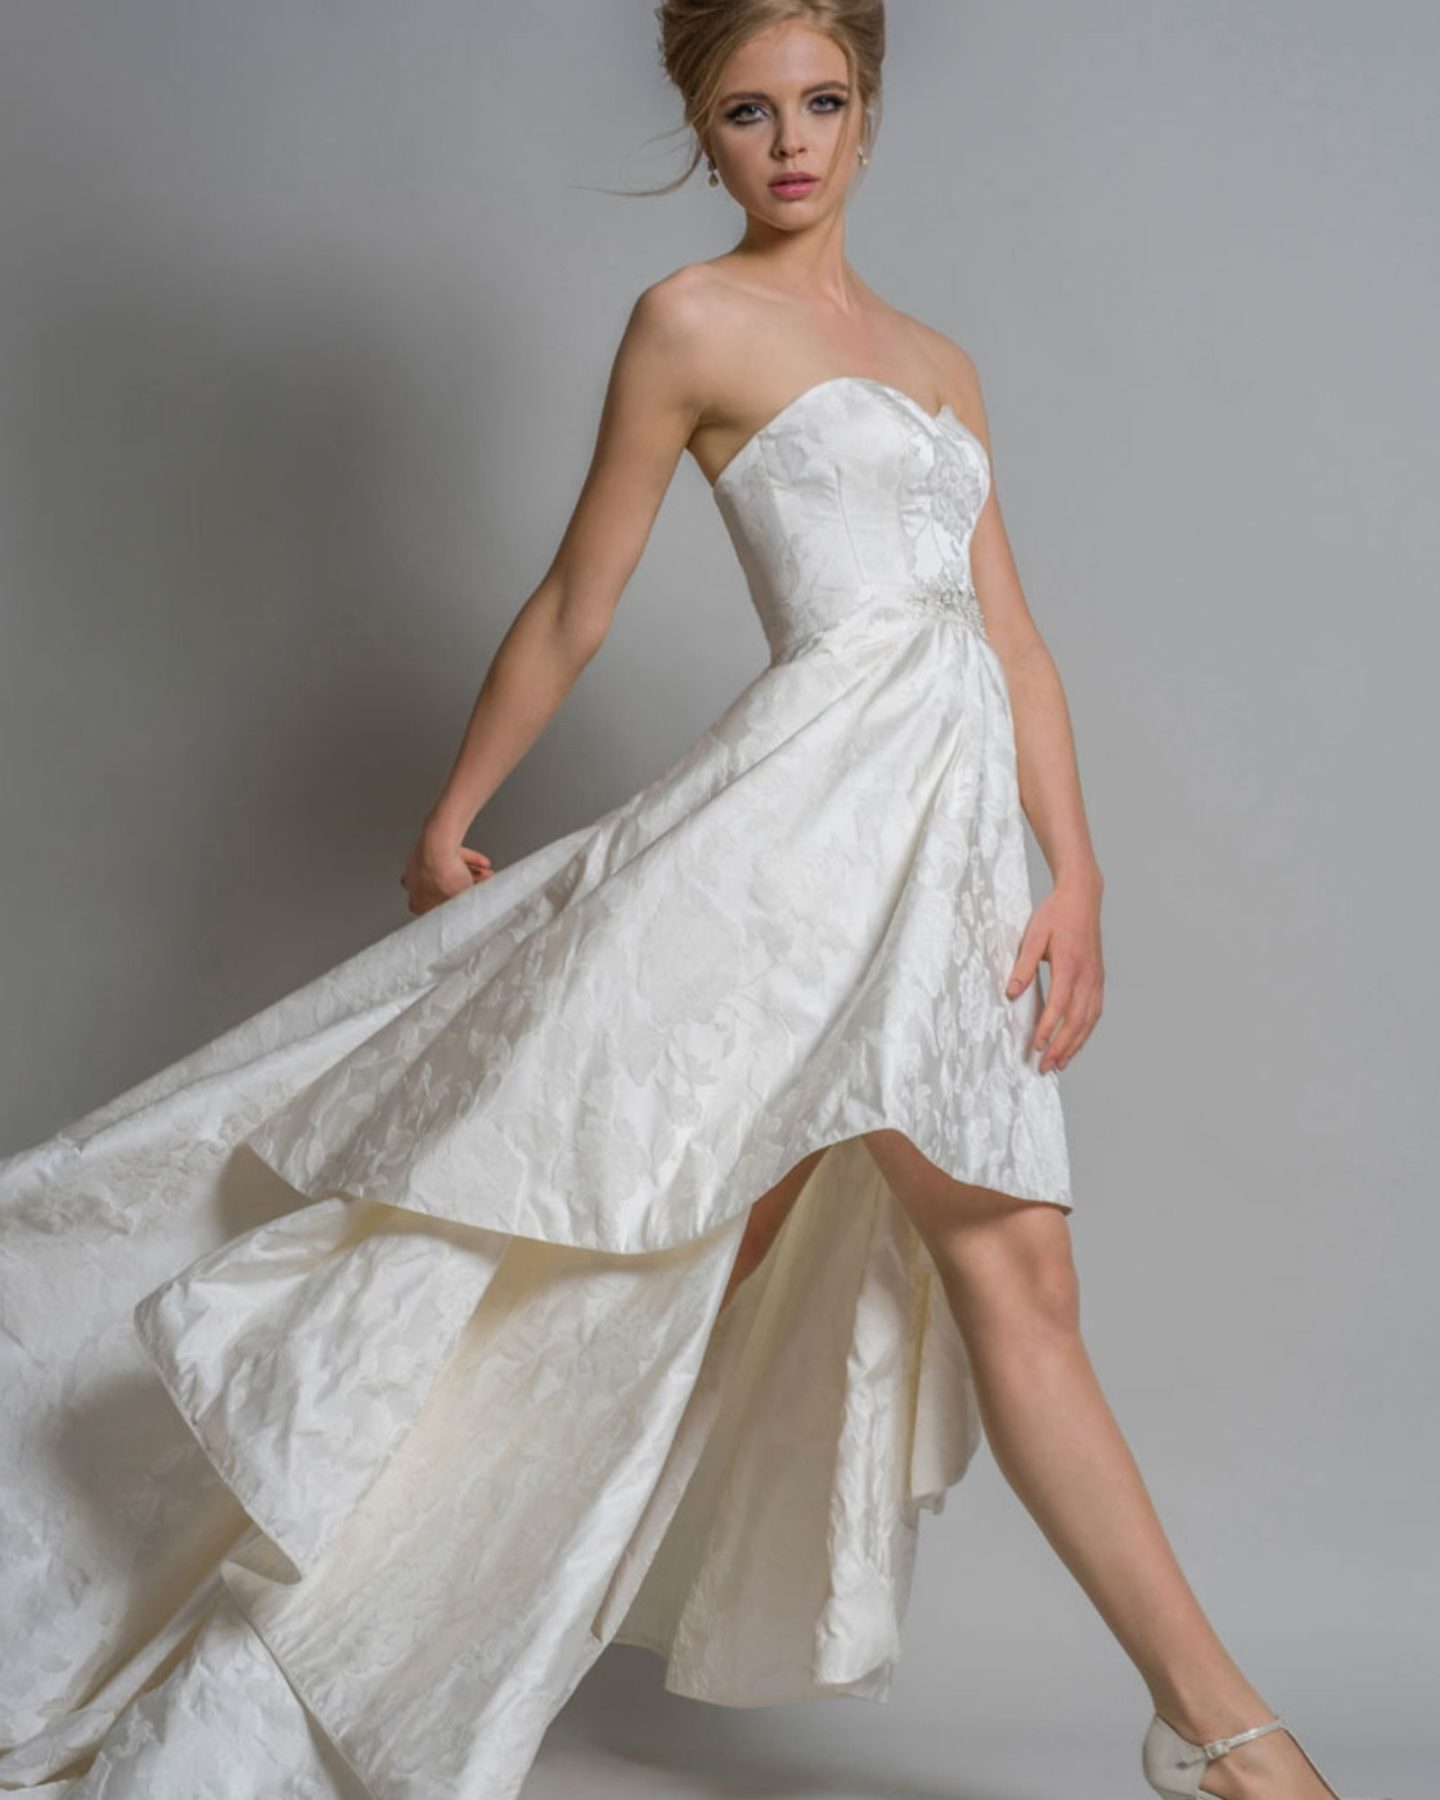 Short wedding dress by Louise Bentley